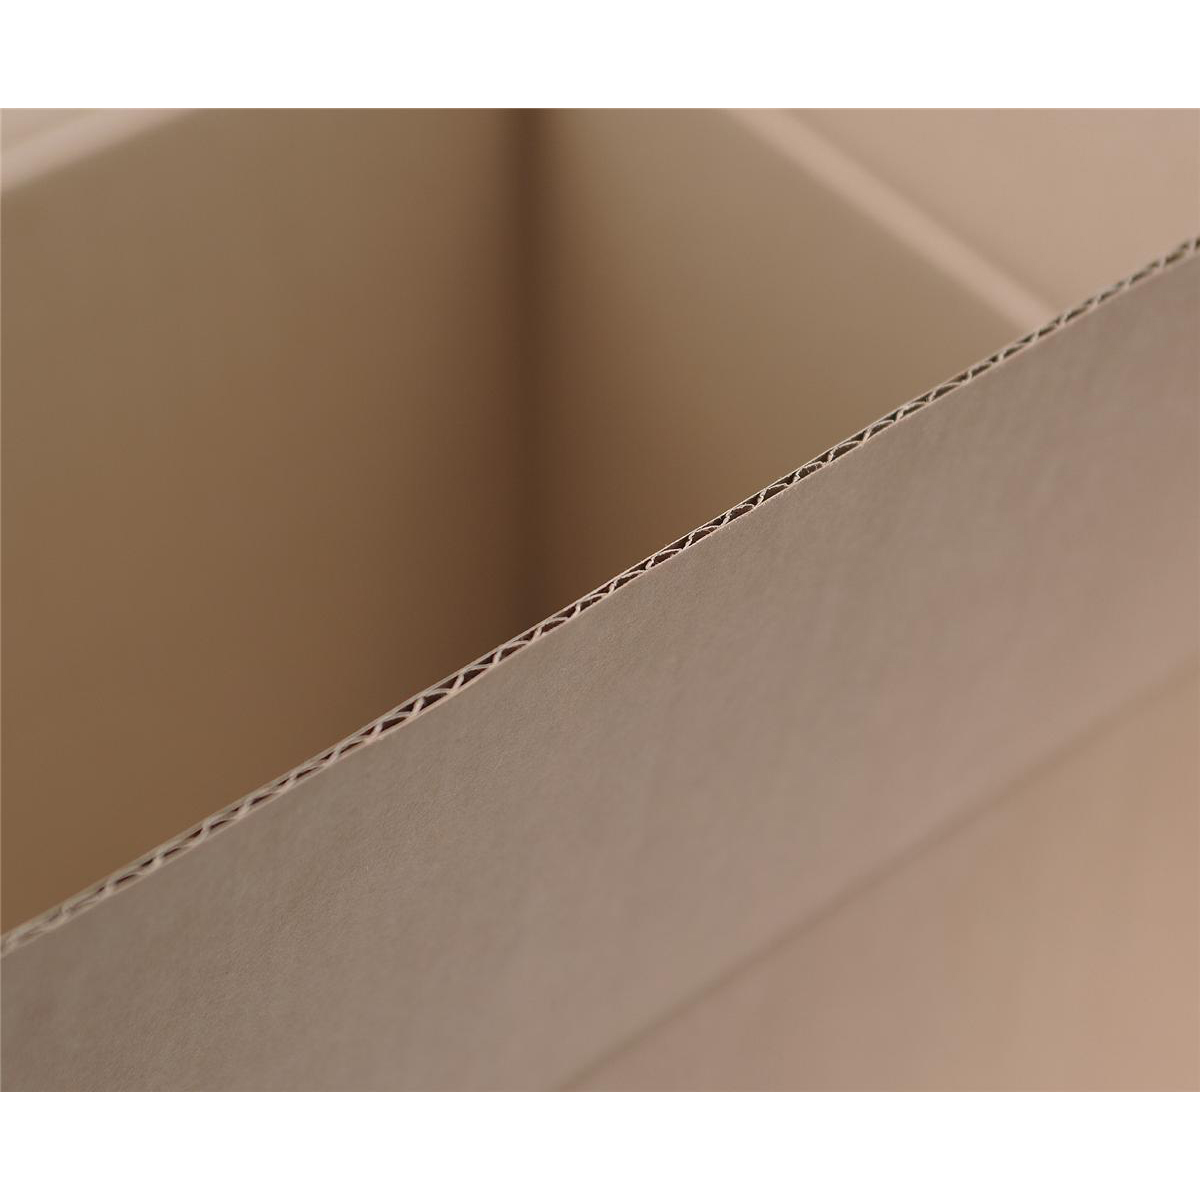 Packing Carton Single Wall Strong Flat Packed 330x254x178mm Brown Pack 25